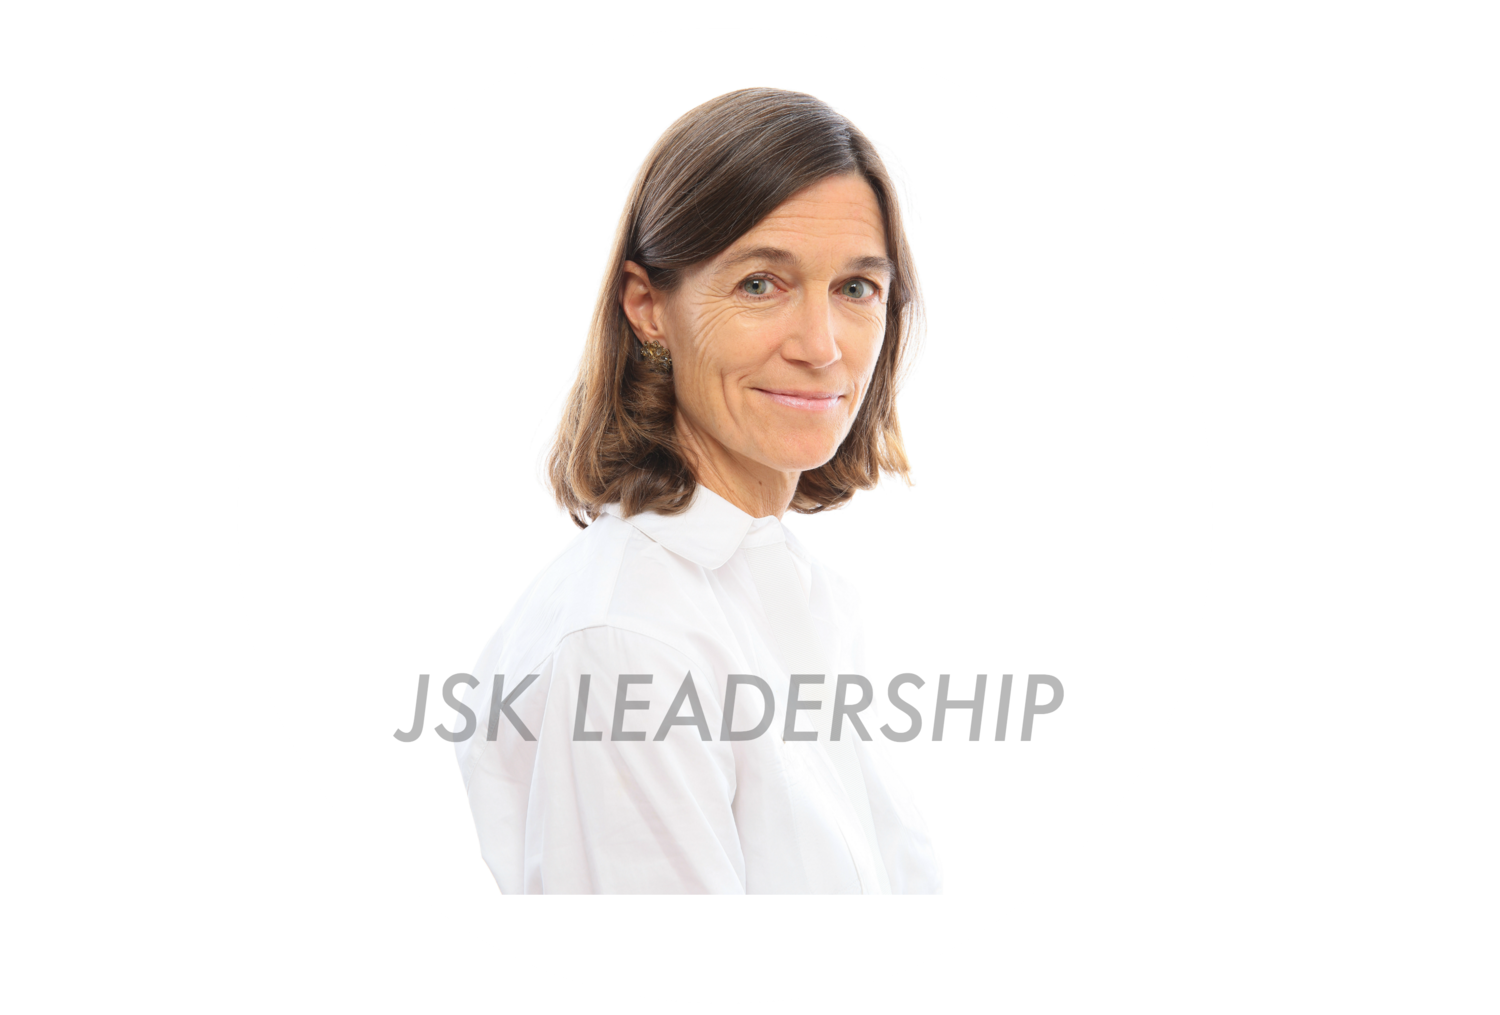 JSK Leadership